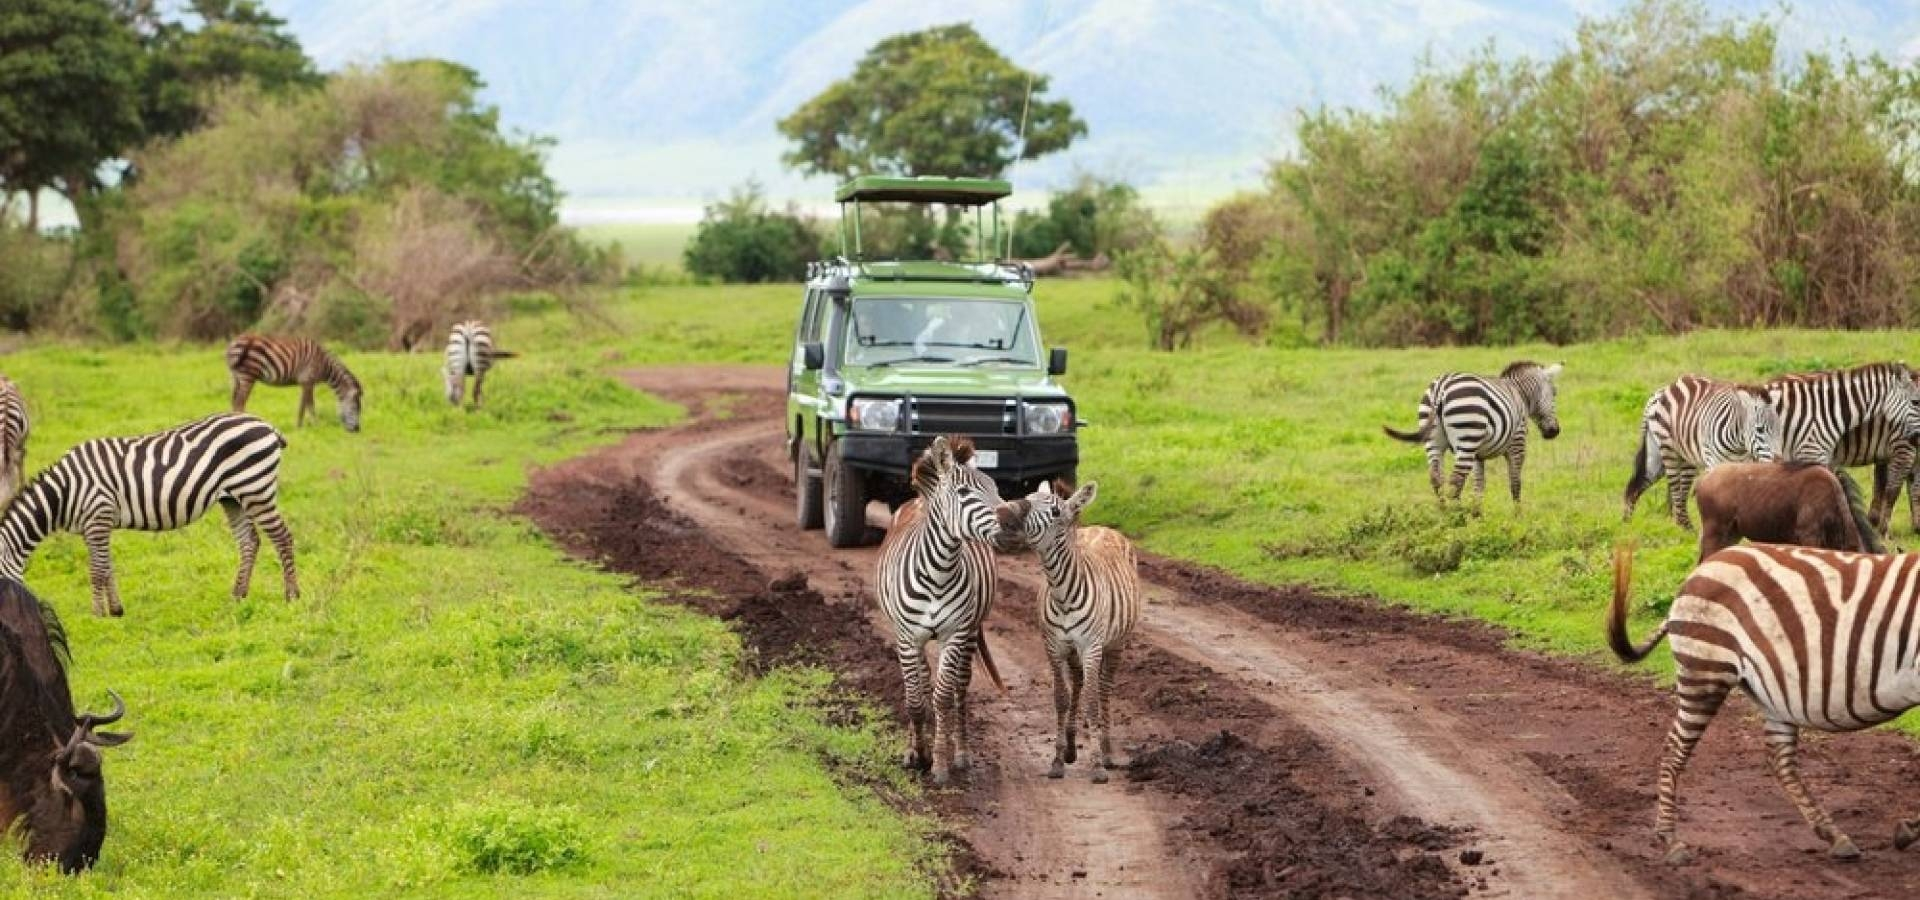 Tanzania - Safari Big Five Grandes Parques del Norte